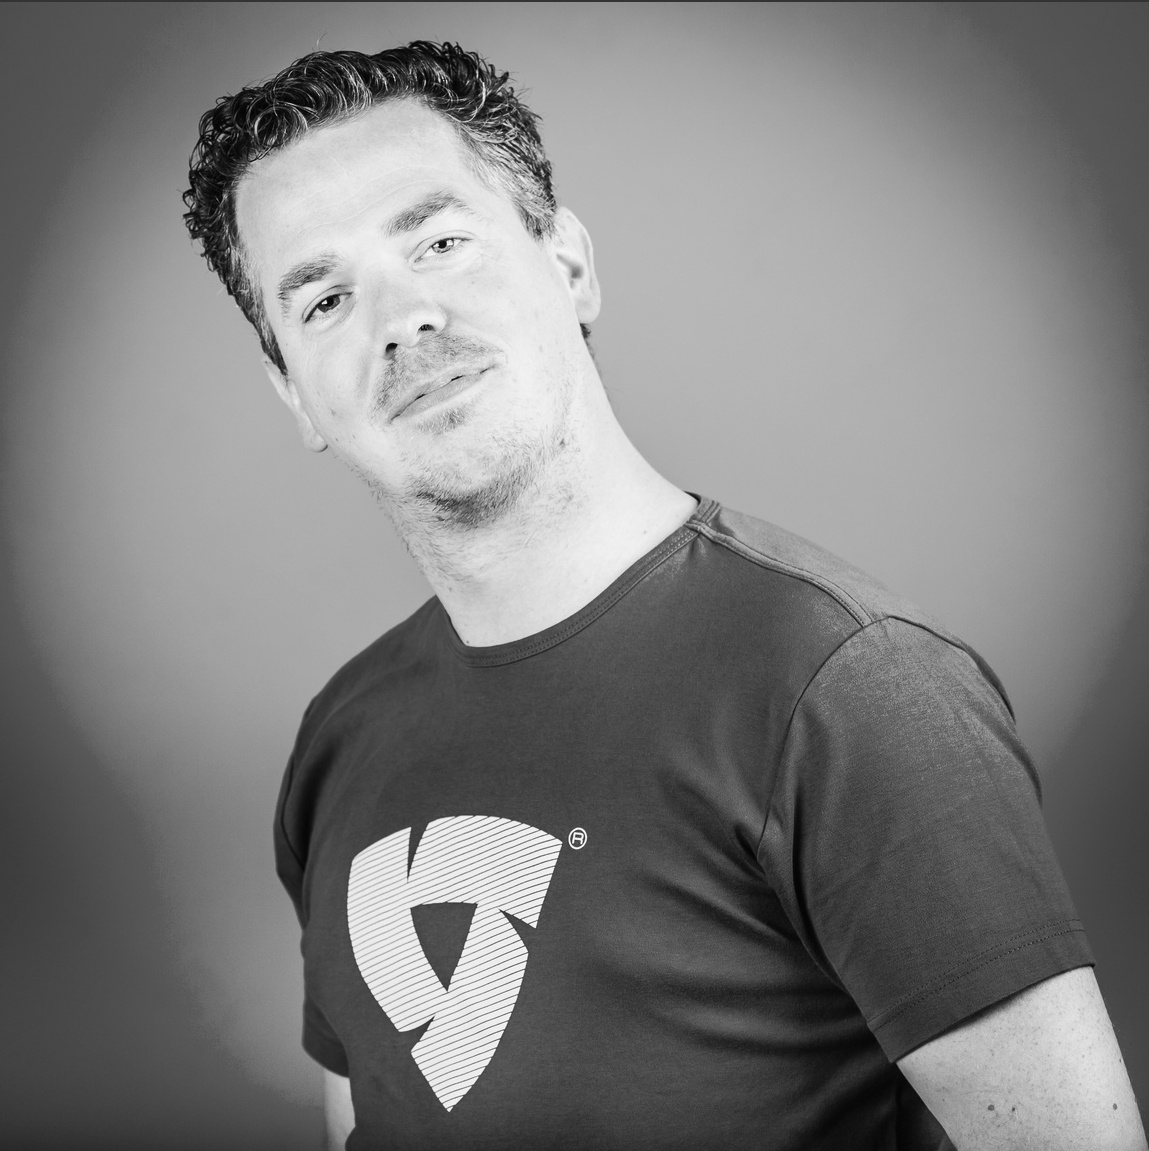 Bas Stijntjes is ITC Manager at REV'IT! – the Dutch designer and manufacturer of fashionable motorcycle gear.